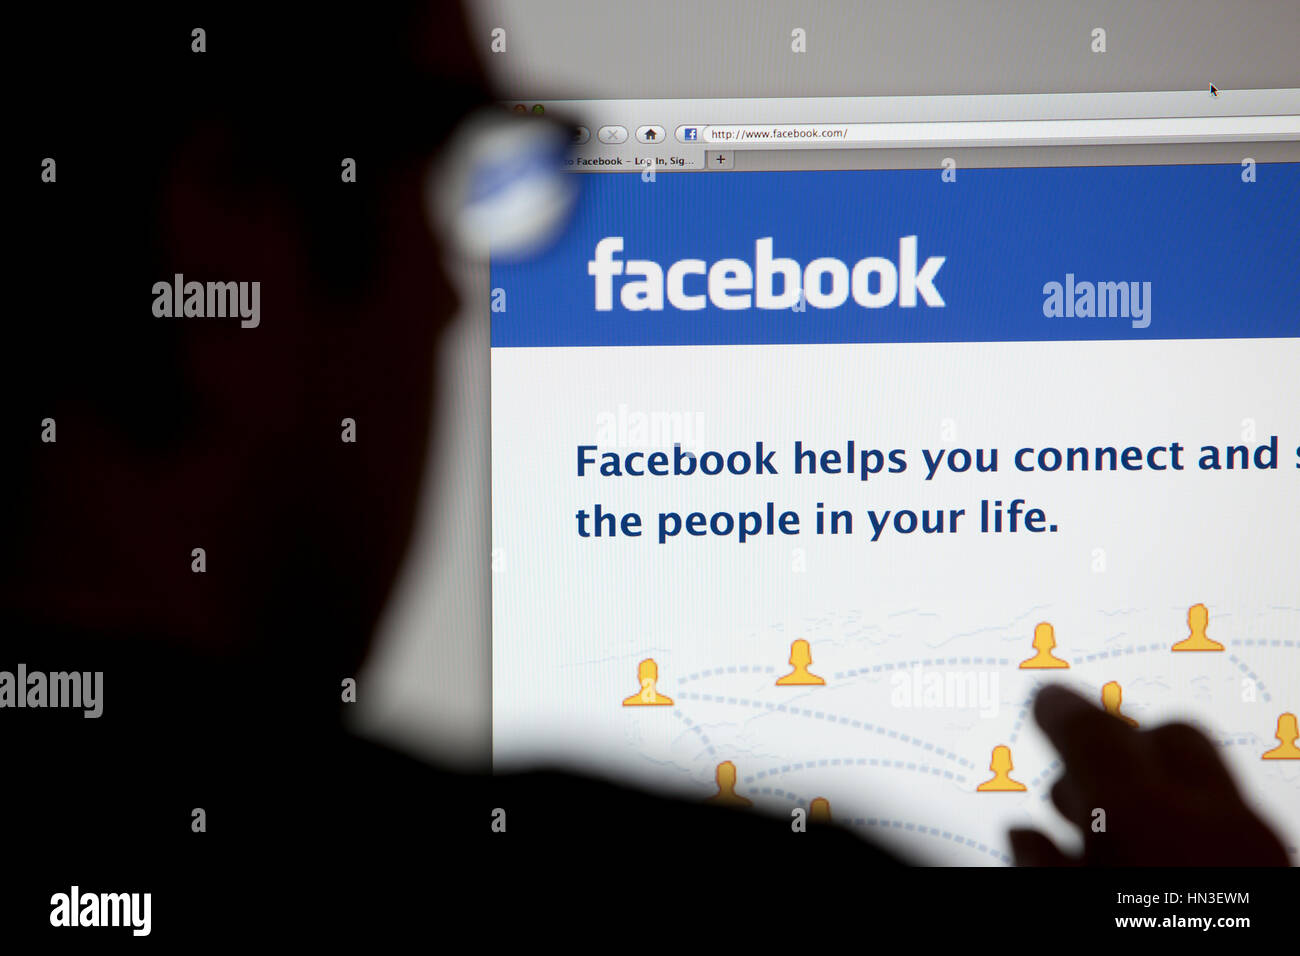 Bath, United Kingdom - May 4, 2011: Close-up of the Facebook homepage displayed on a LCD computer screen with silhouette - Stock Image